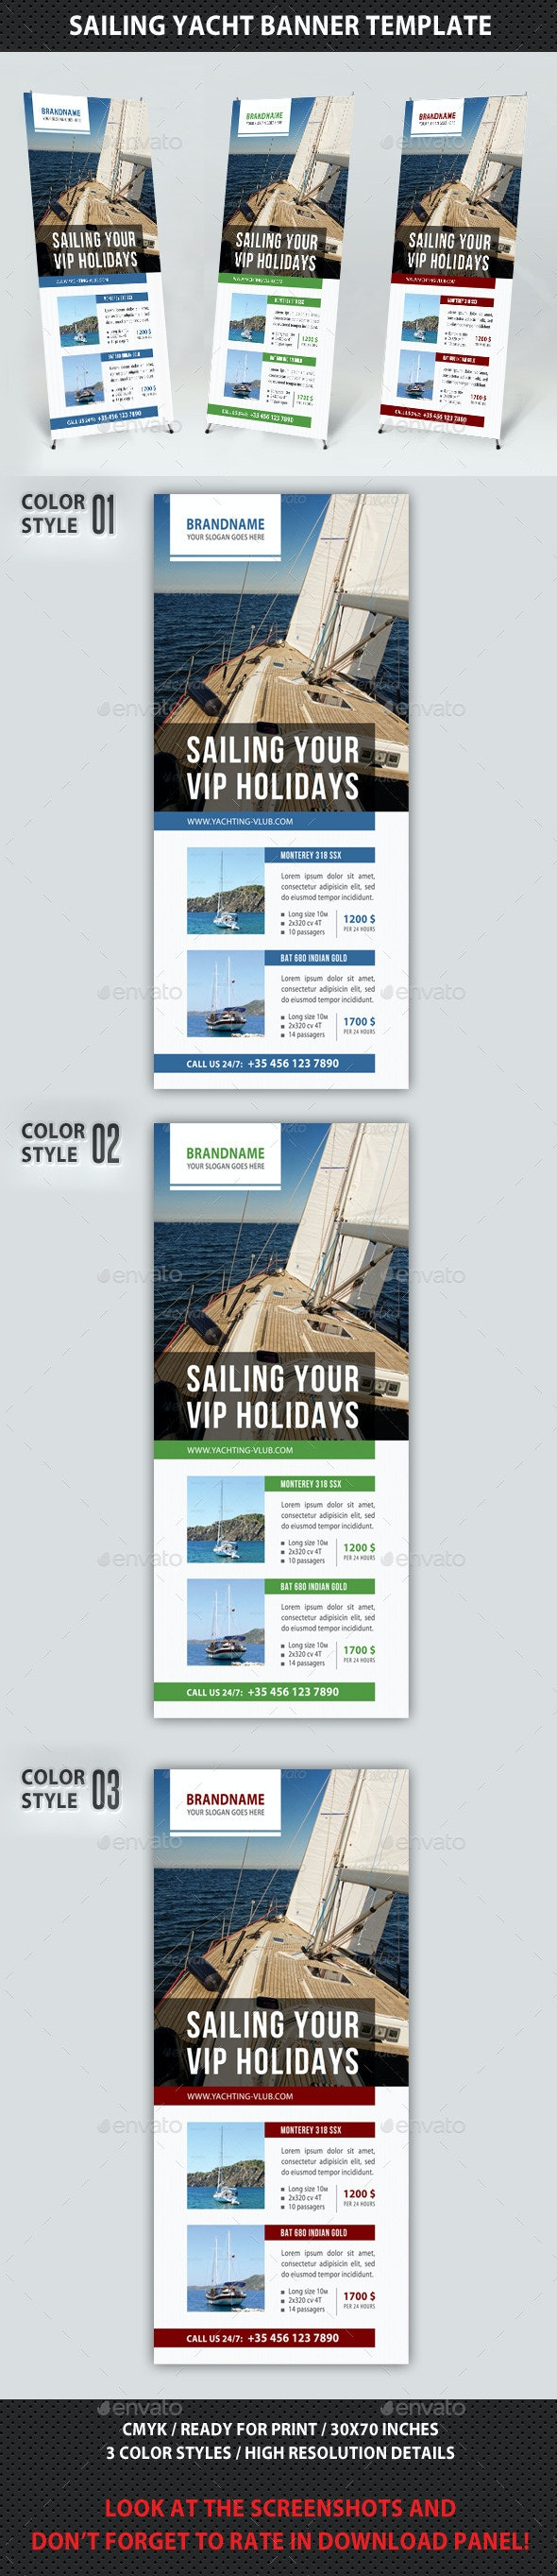 Sailing Yacht Banner Template 02